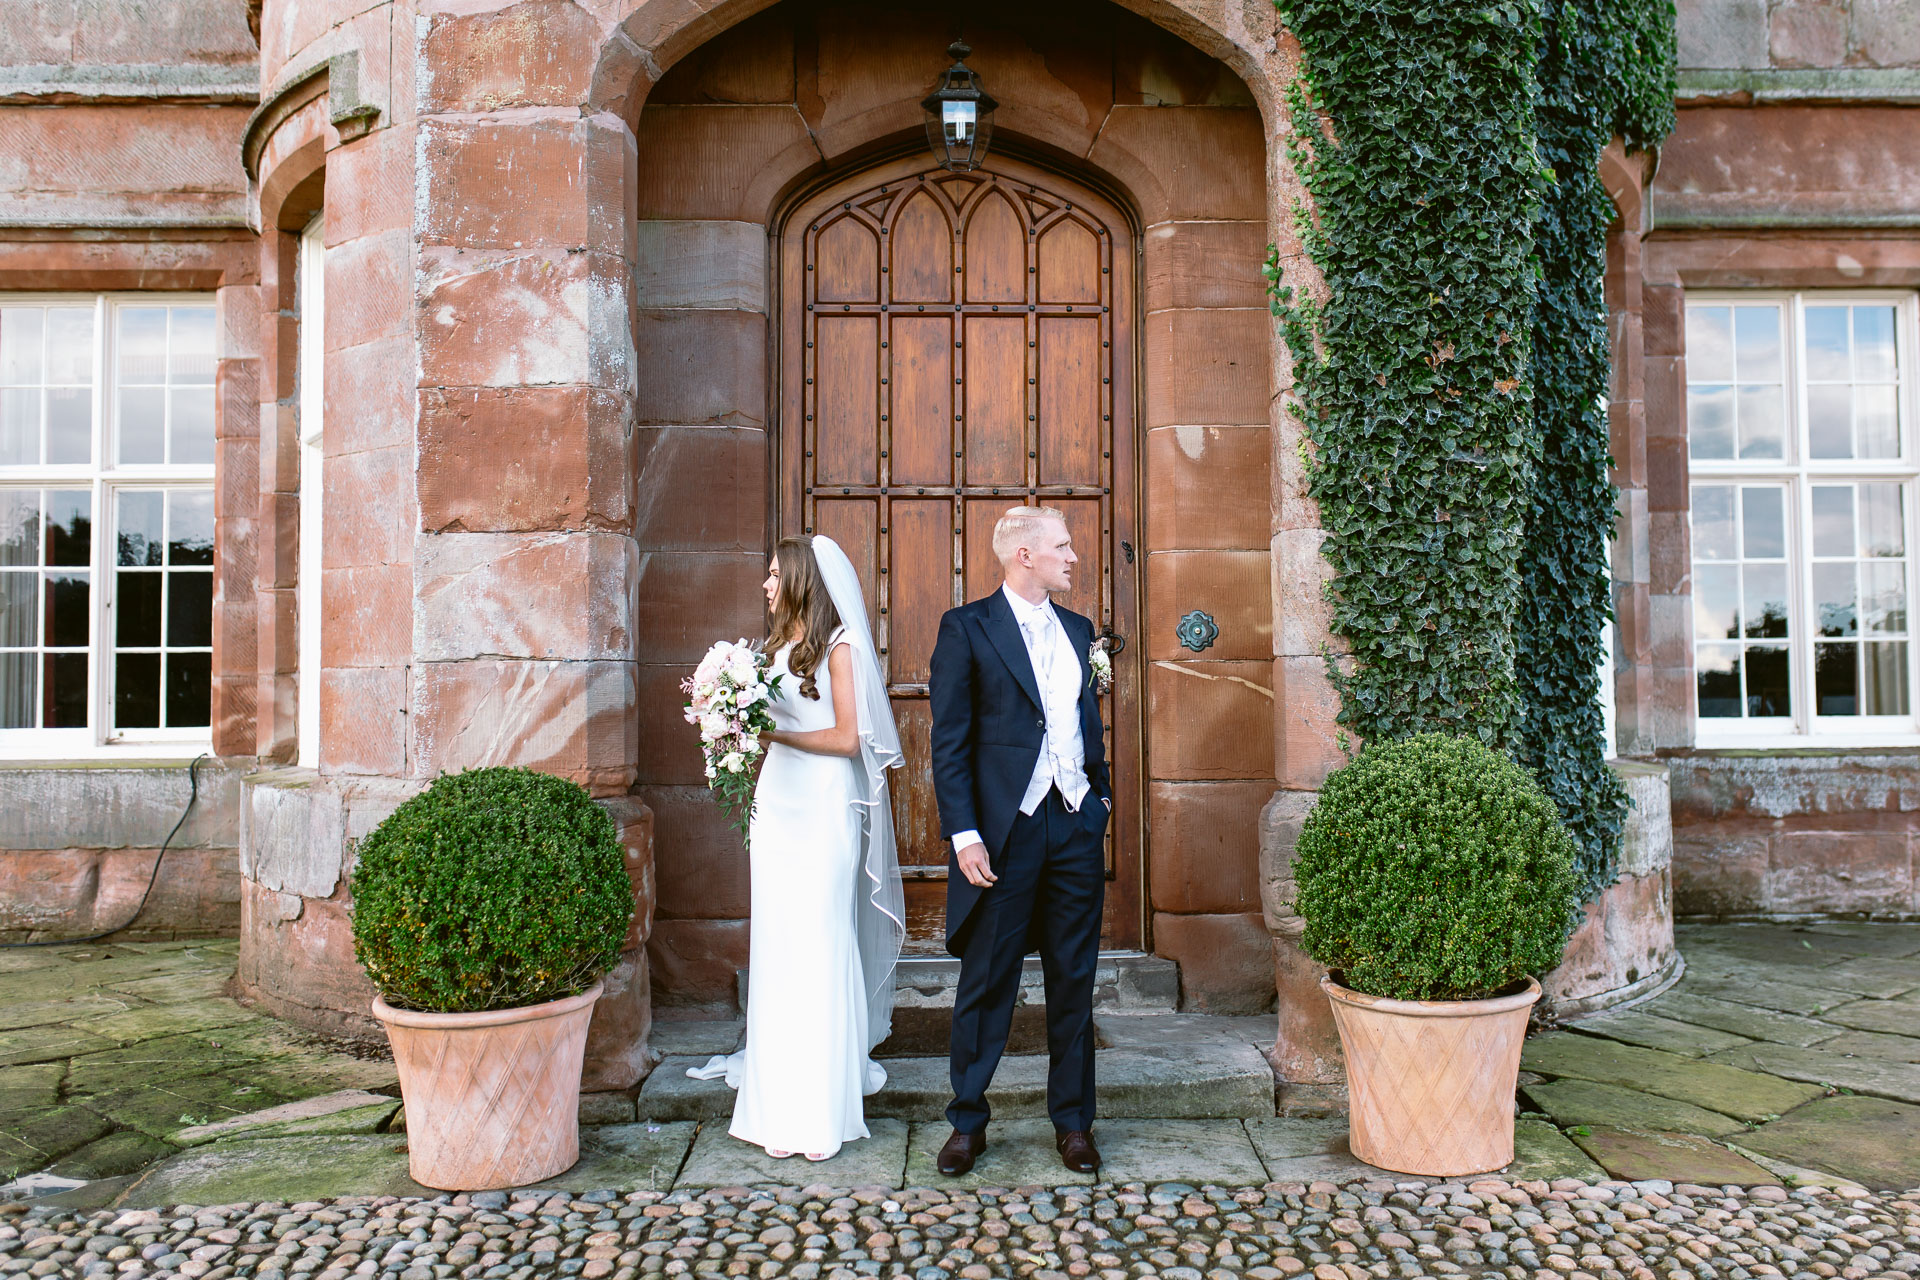 The Citadel wedding Shropshire Sarah-Jane and Steve bride and groom standing at the venue door and looking opposite directions